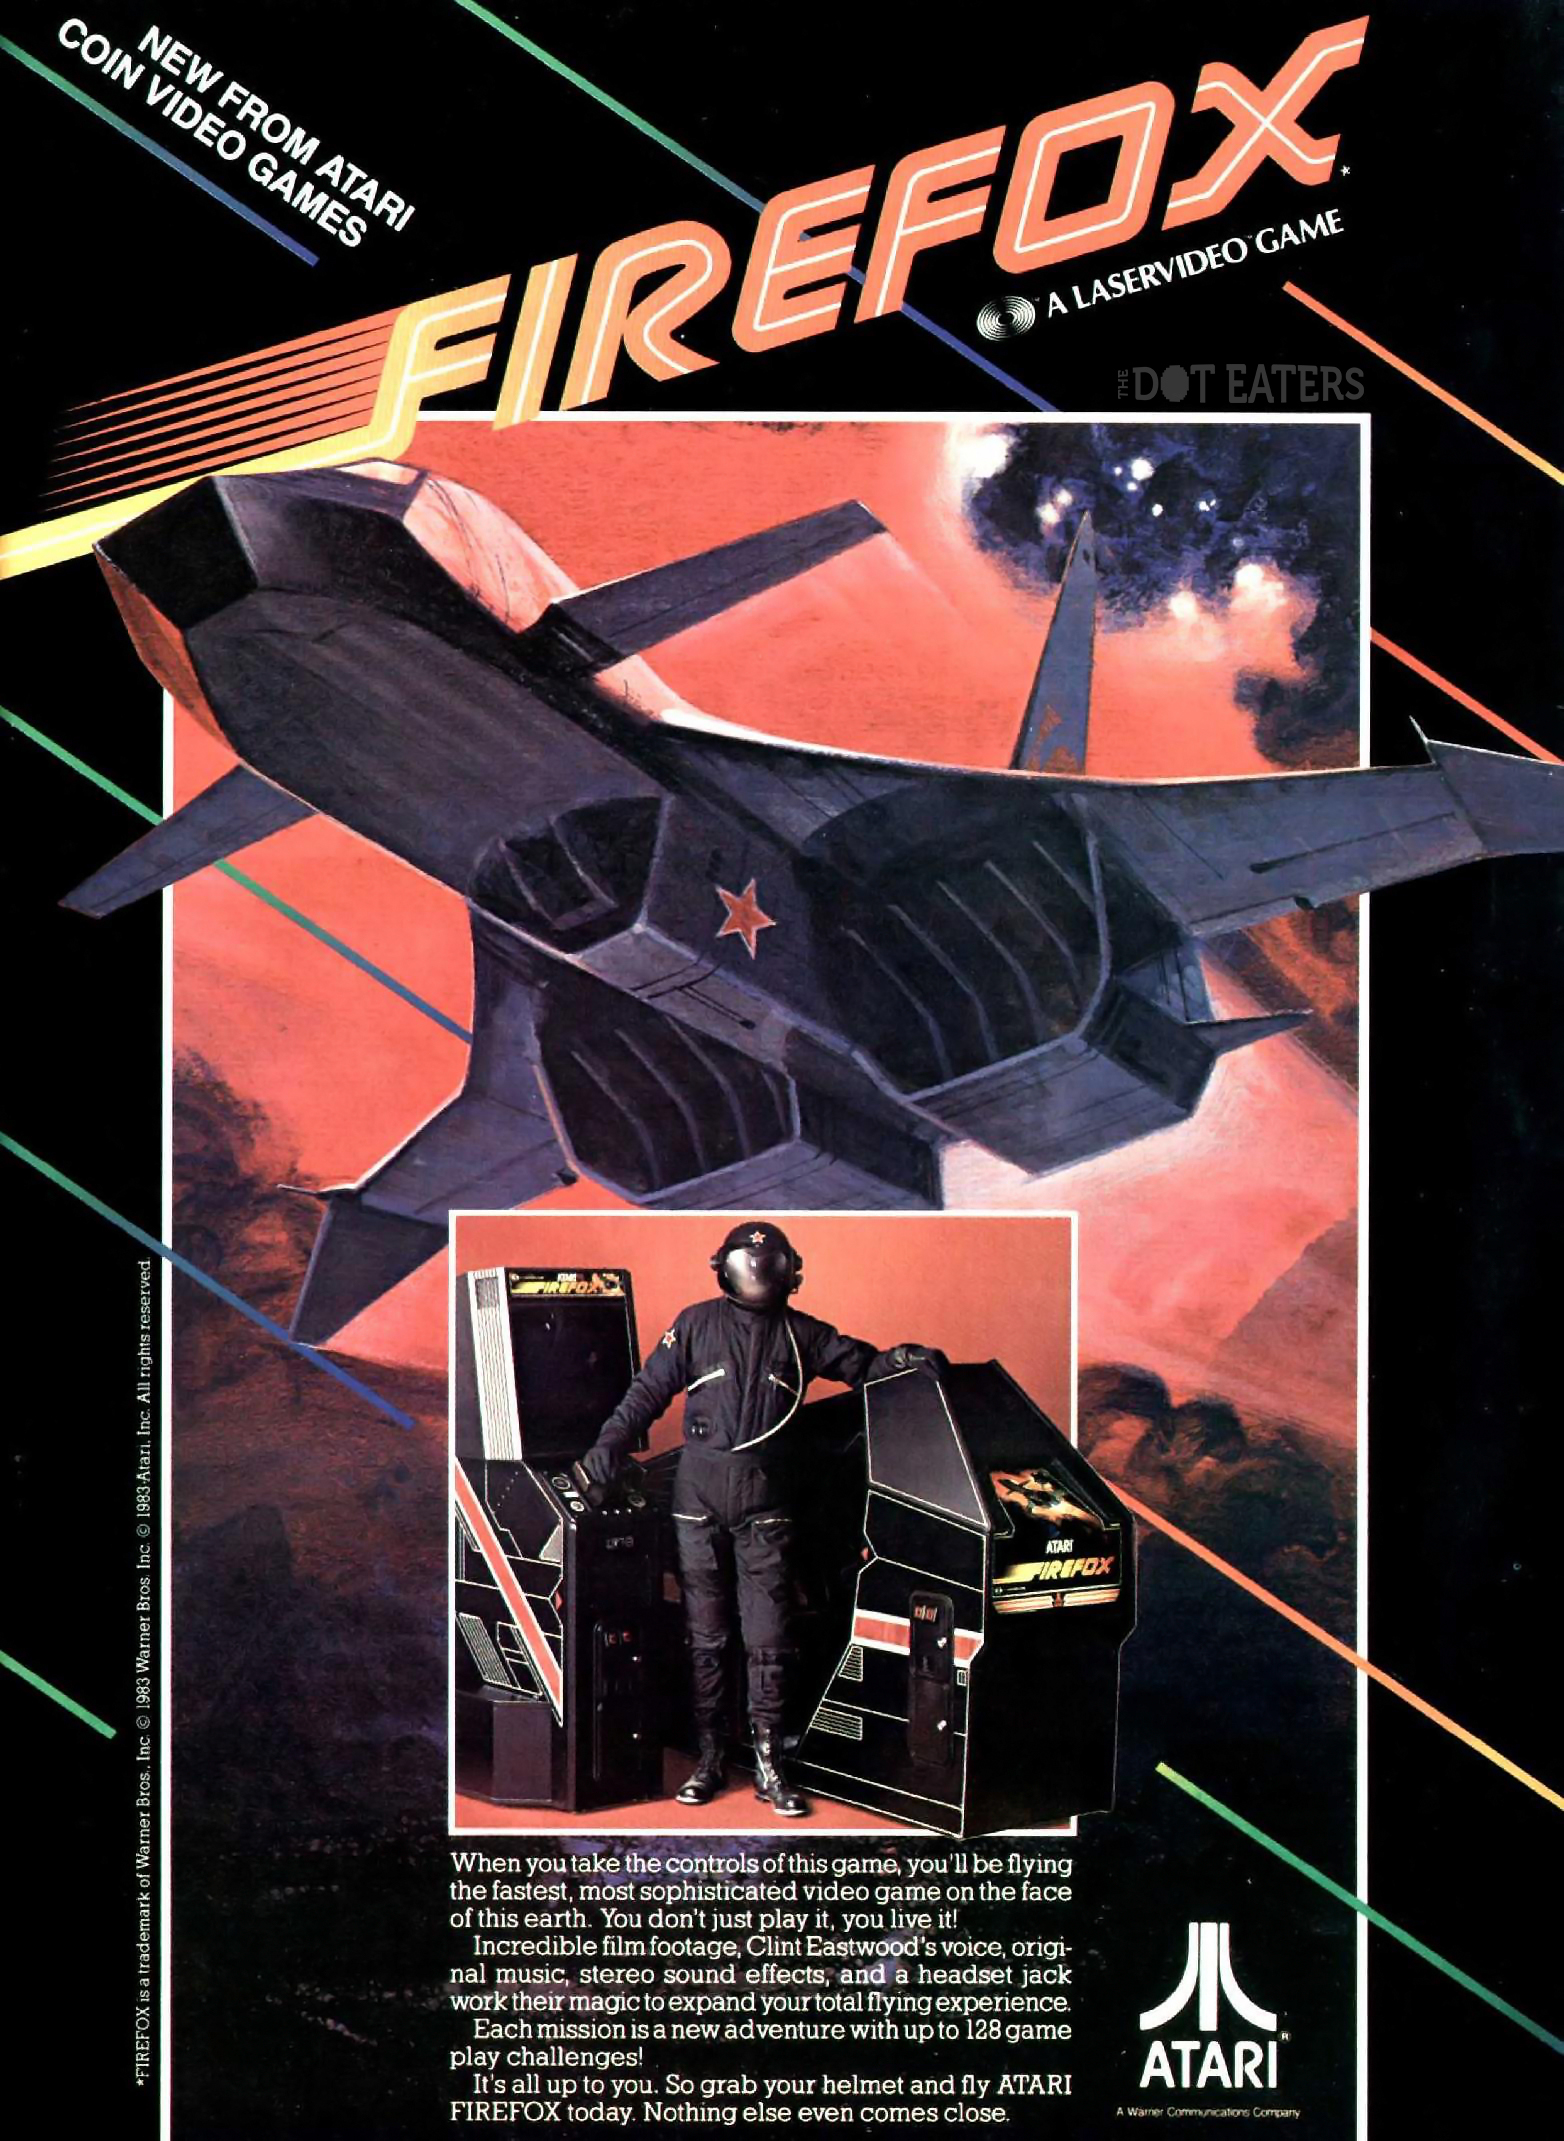 1984 ad for Firefox, an arcade laserdisc game by Atari, based on the Clint Eastwood movie